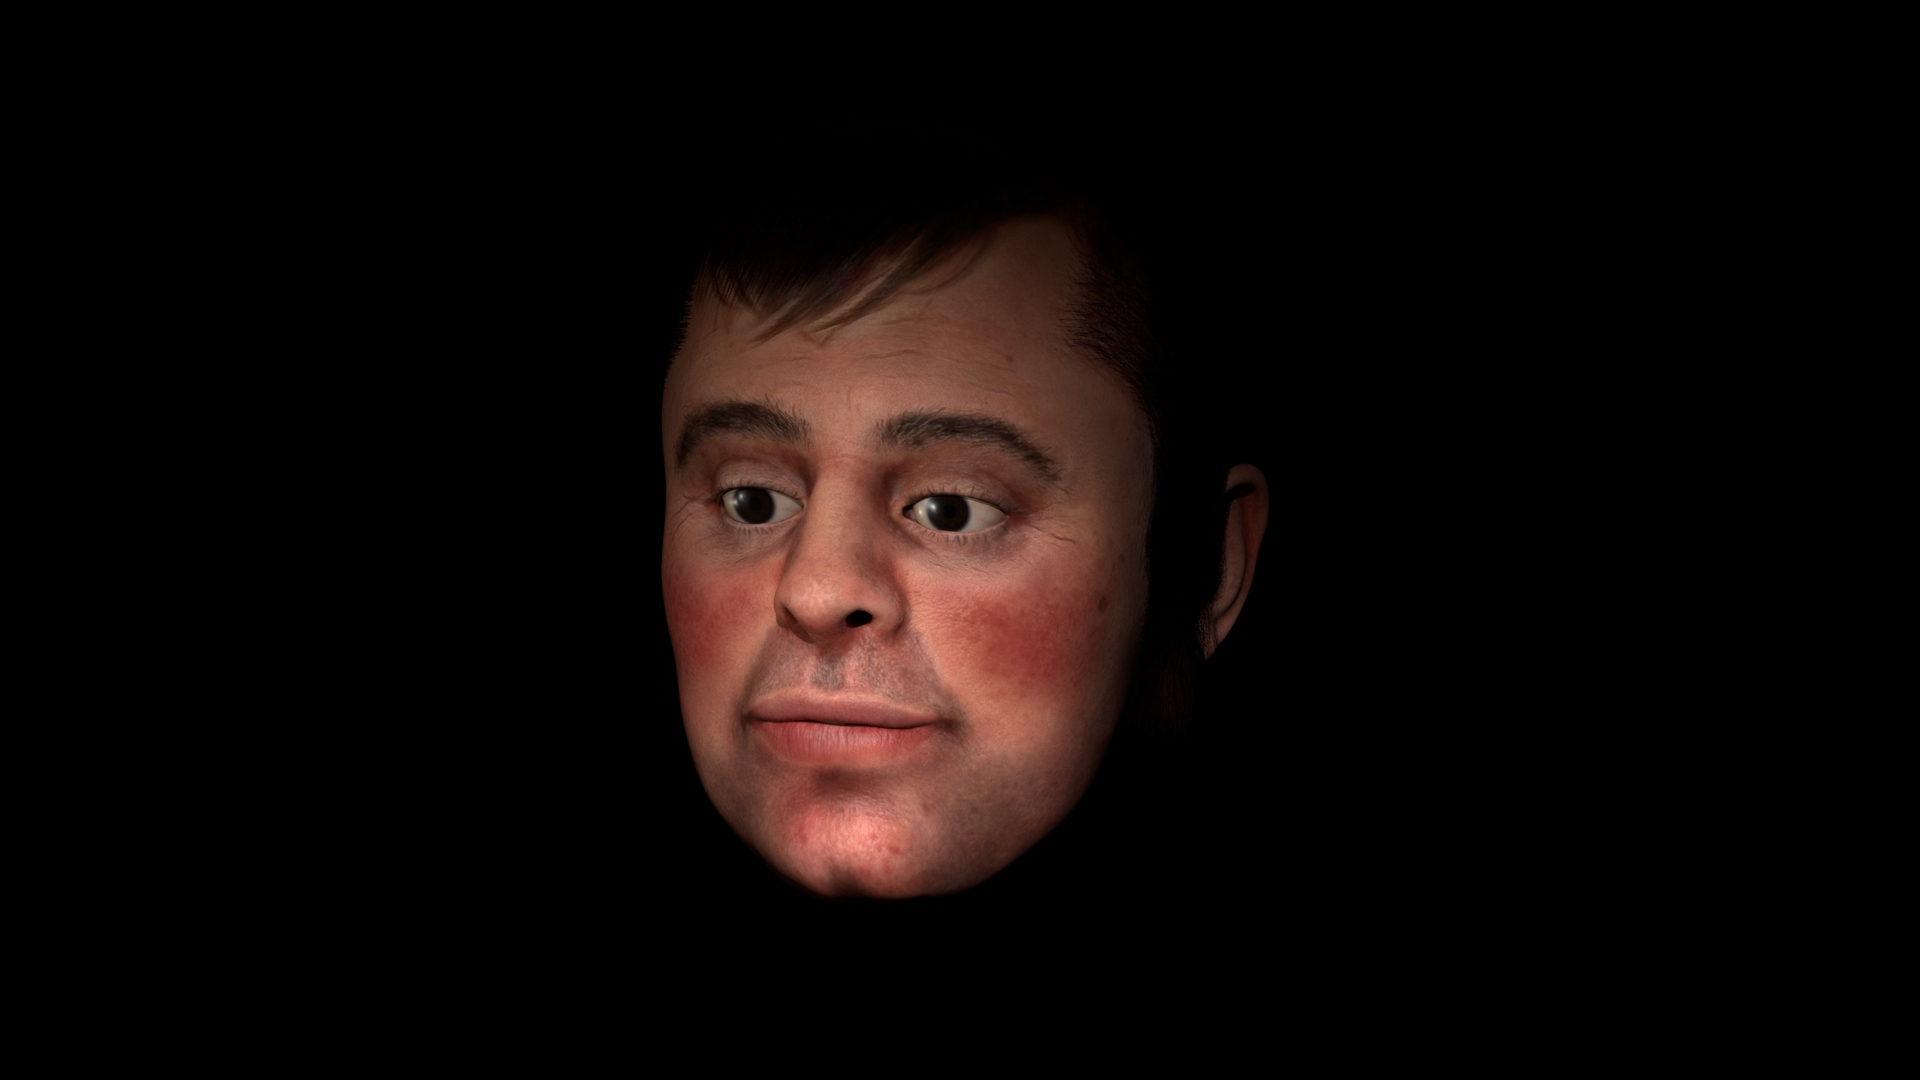 Robert Burns (LJMU Face Lab/University of Dundee/DI4D/PA)